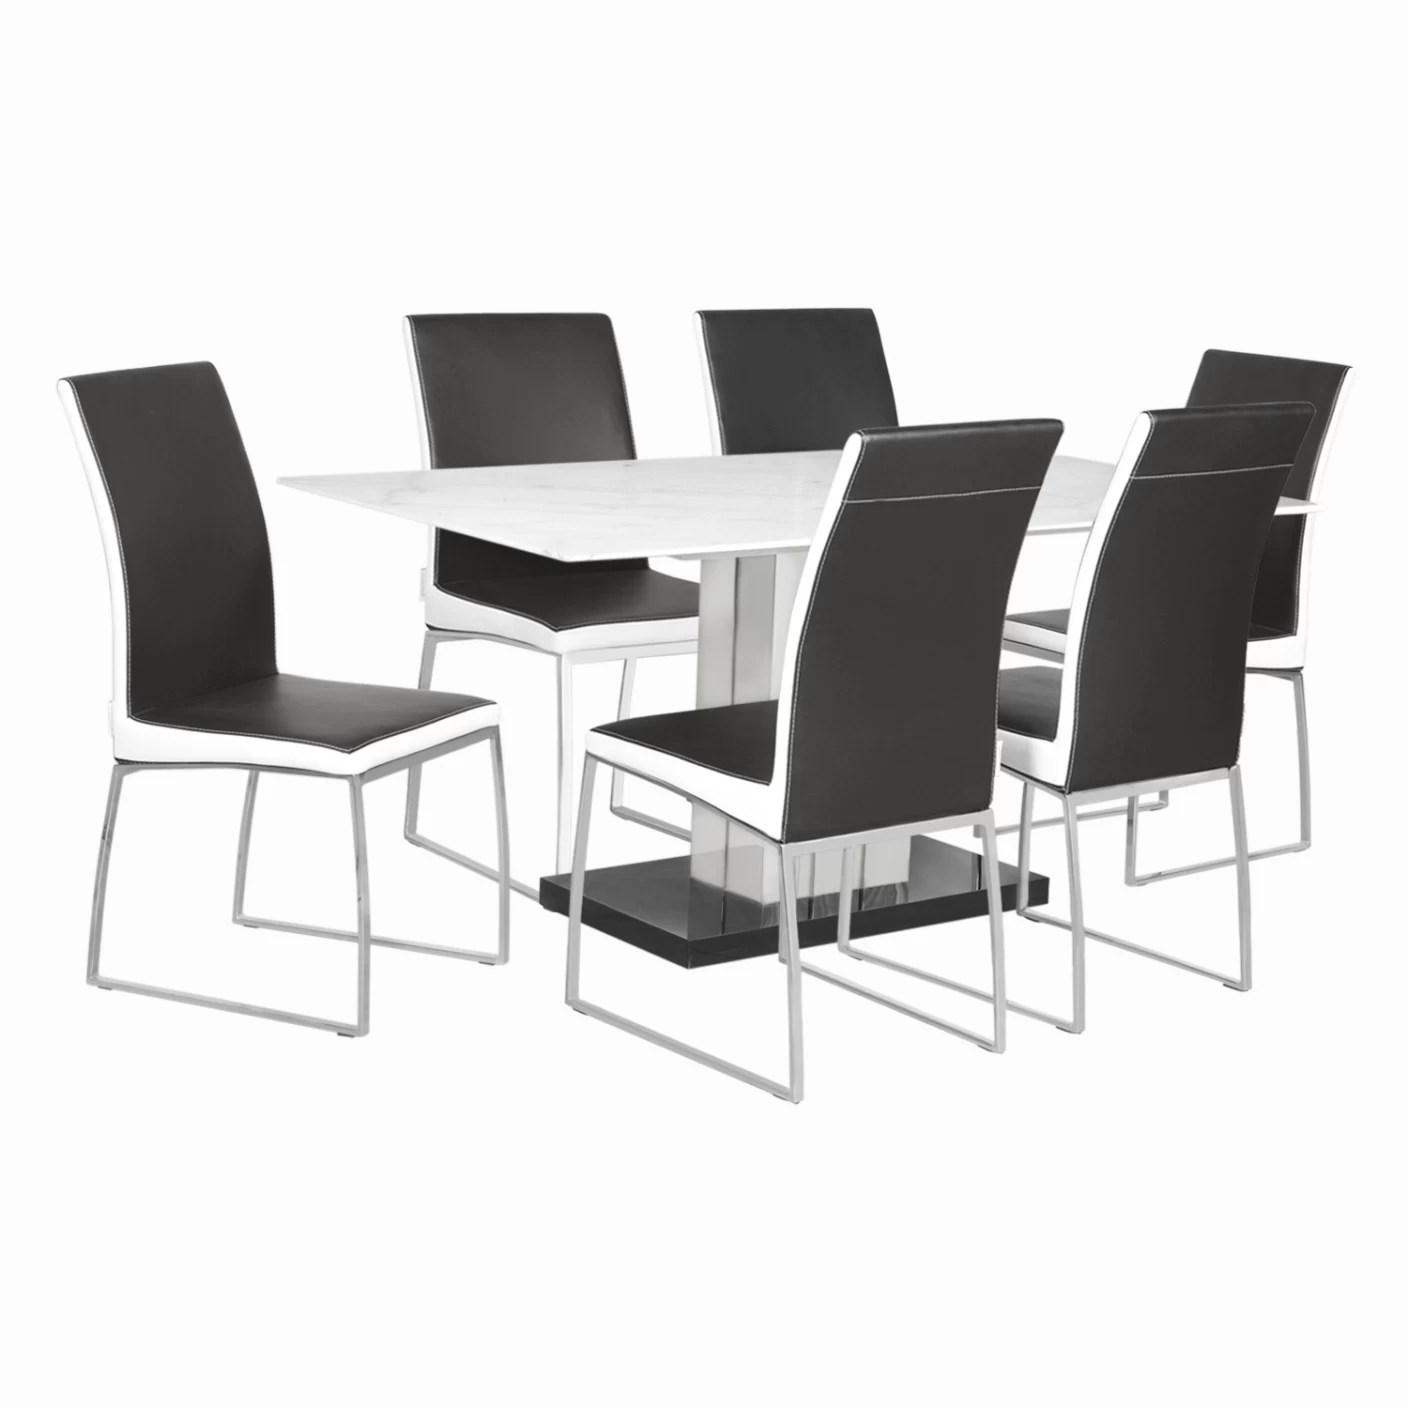 ergonomic chair godrej price home depot outdoor cushions interio novel and marvel dining set stone 6 seater